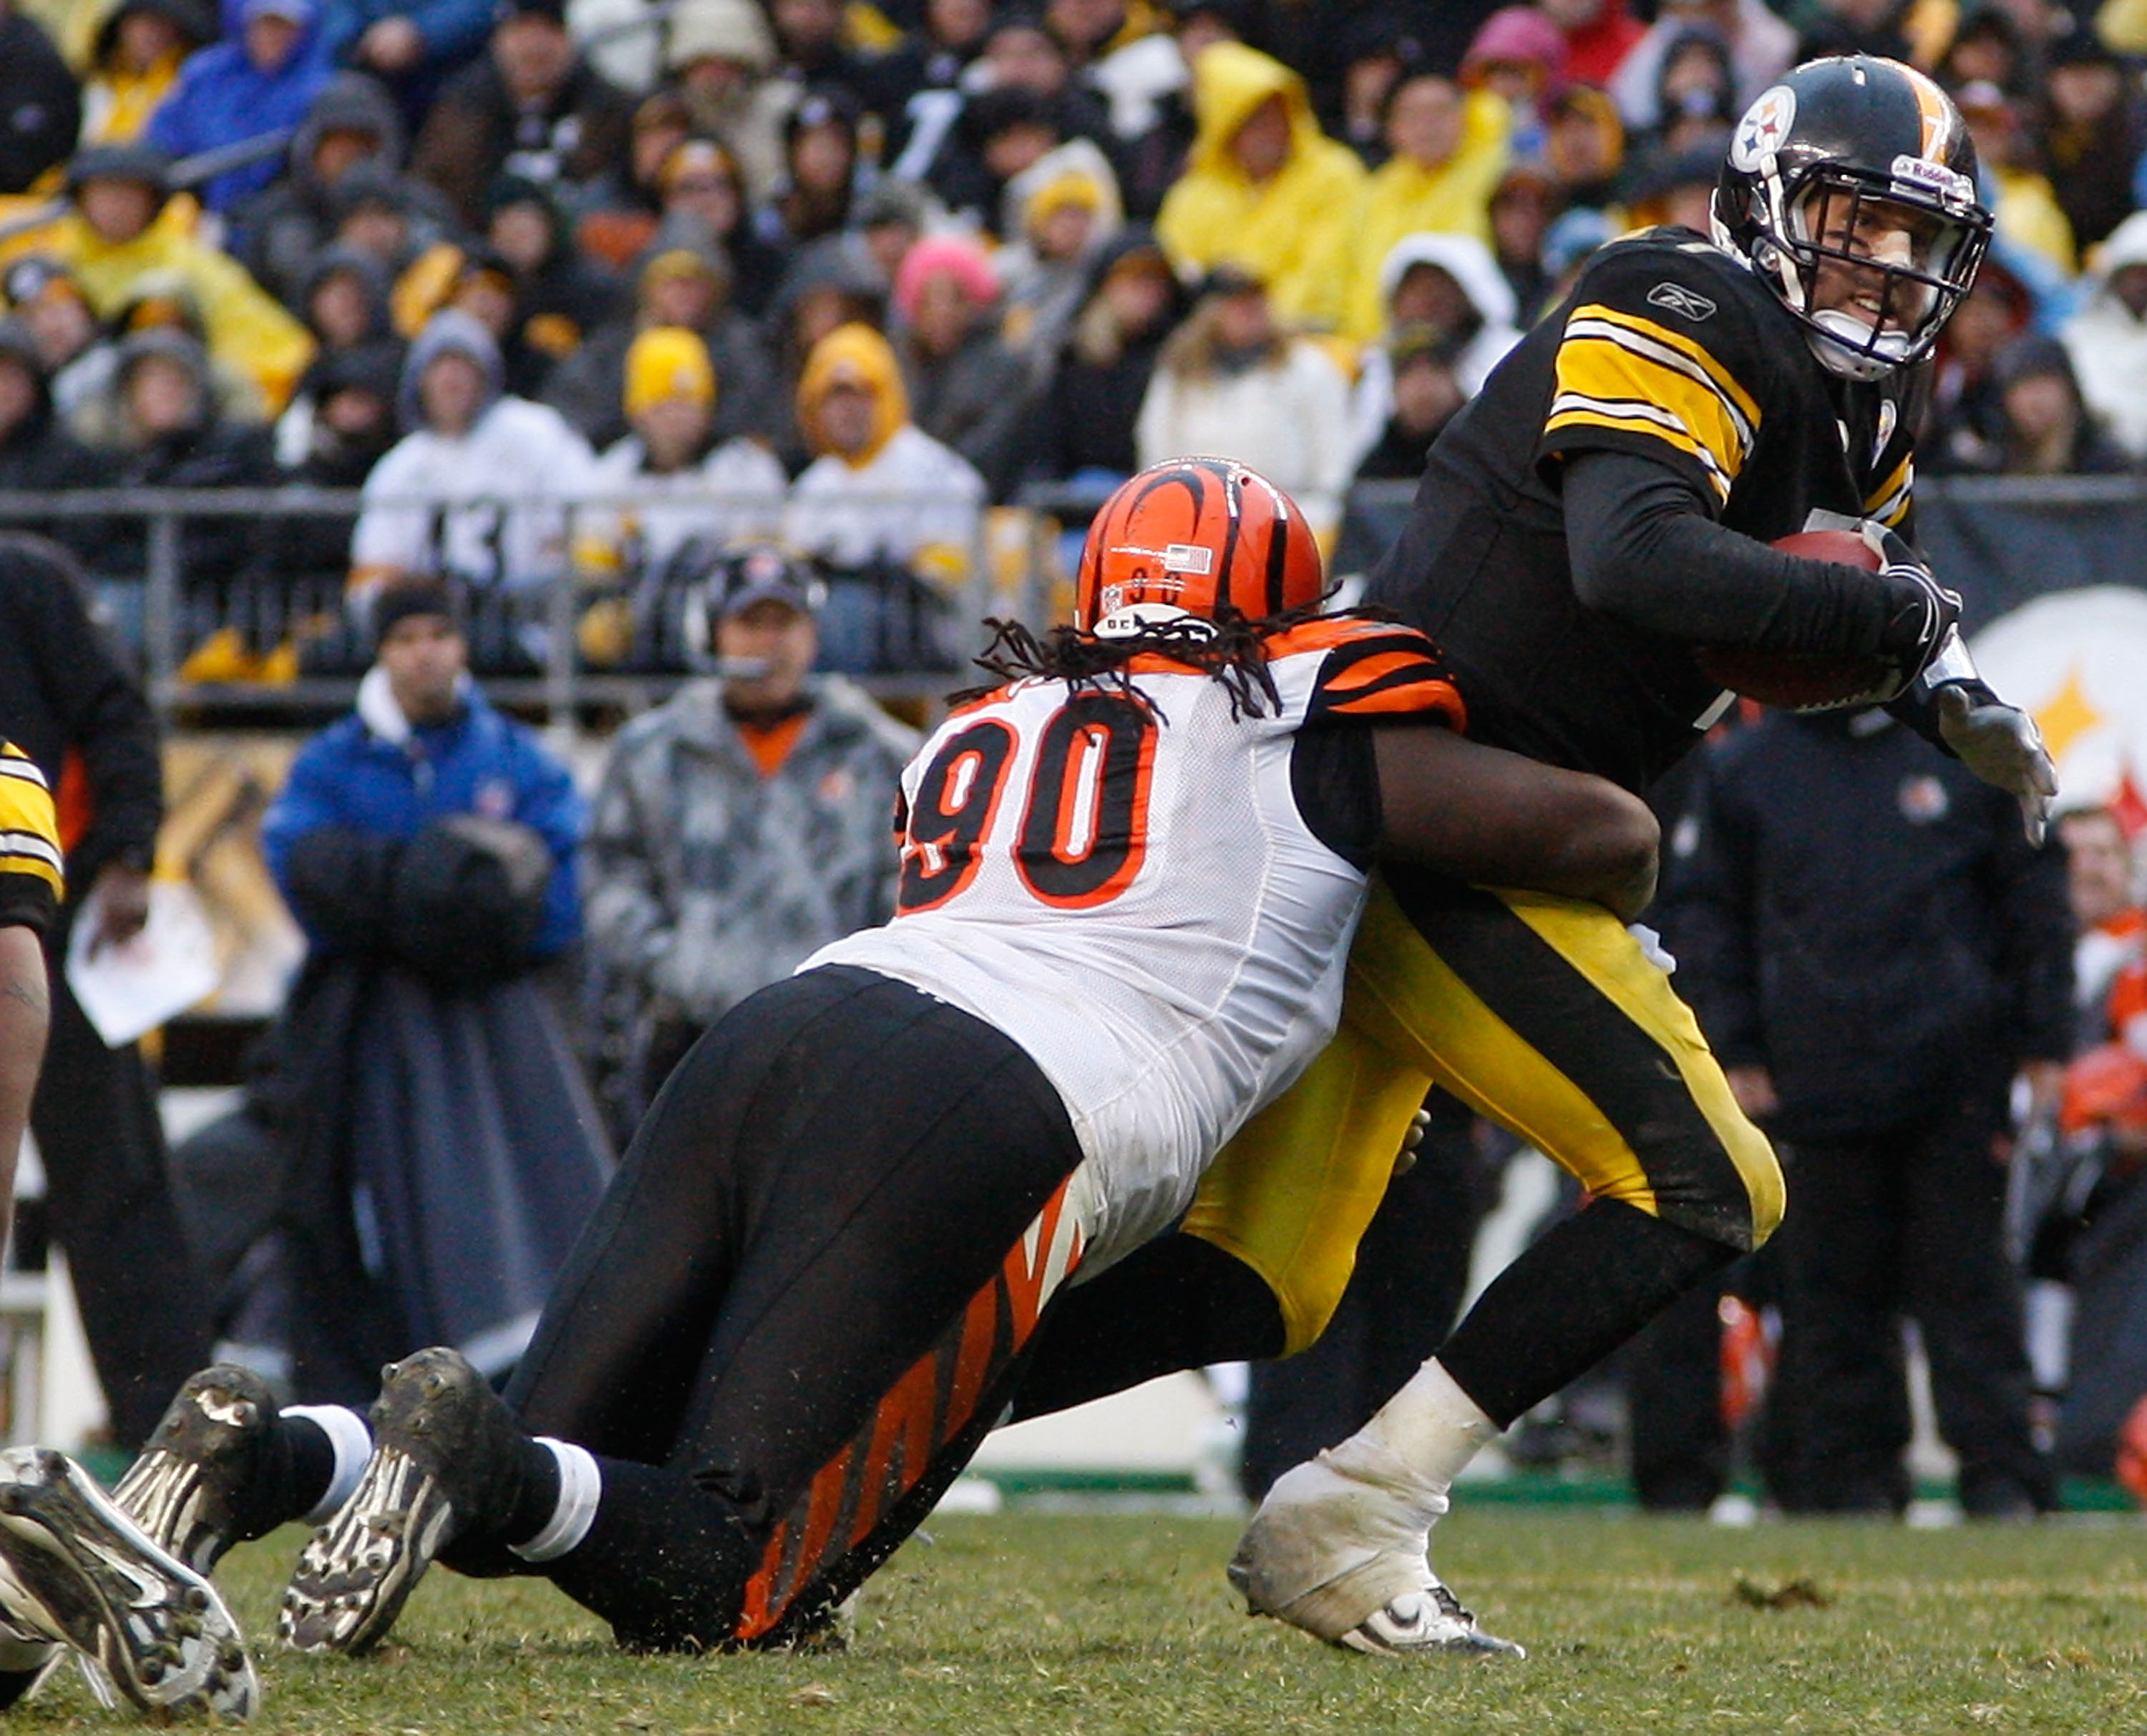 PITTSBURGH - DECEMBER 12:  Ben Roethlisberger #7 of the Pittsburgh Steelers is sacked by Pat Sims #90 of the Cincinnati Bengals during the game on December 12, 2010 at Heinz Field in Pittsburgh, Pennsylvania.  (Photo by Jared Wickerham/Getty Images)